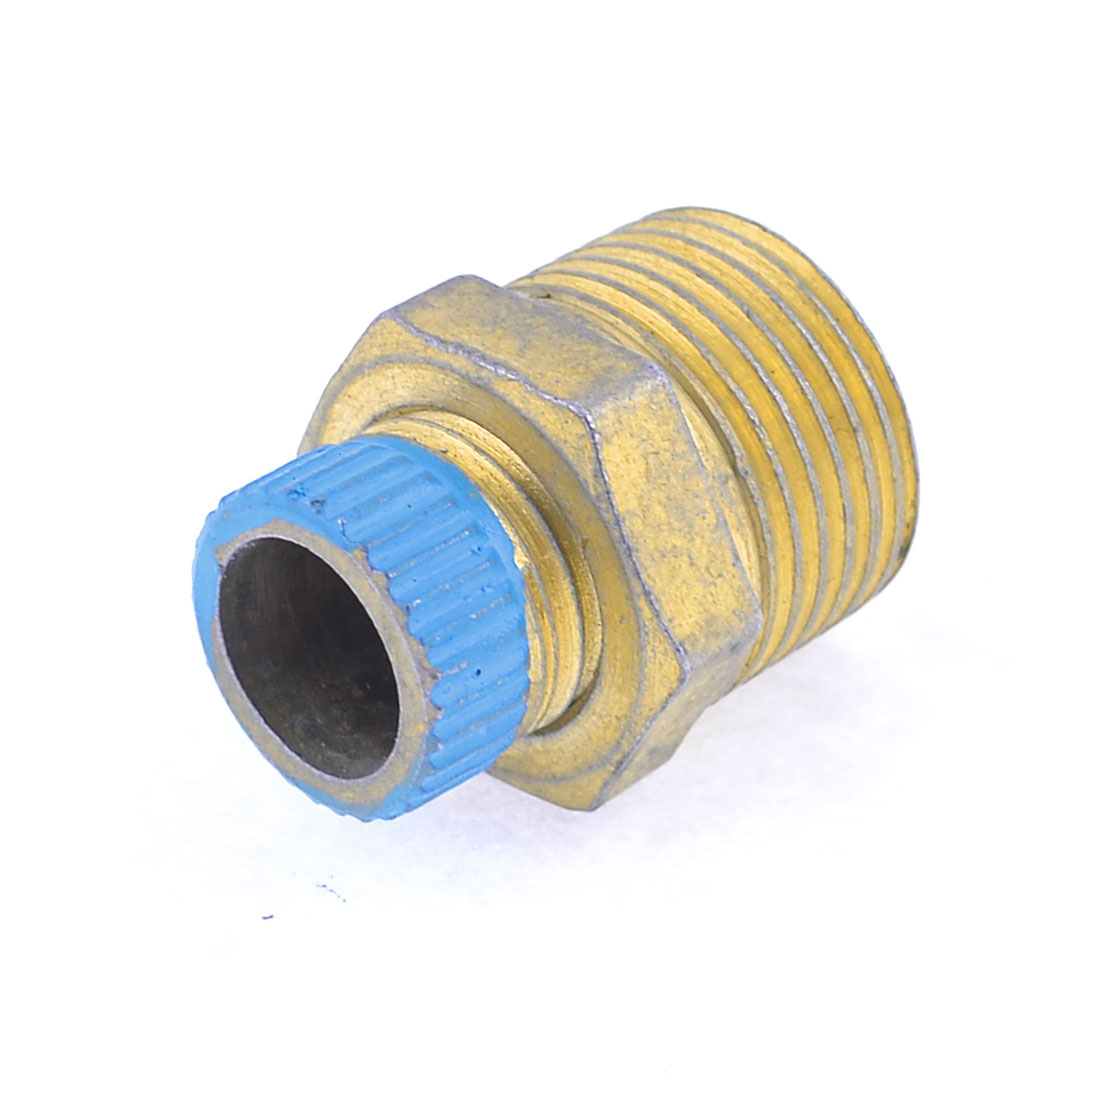 "Air Compressor Part Metal 0.47"" Male Threaded Water Drain Valve"